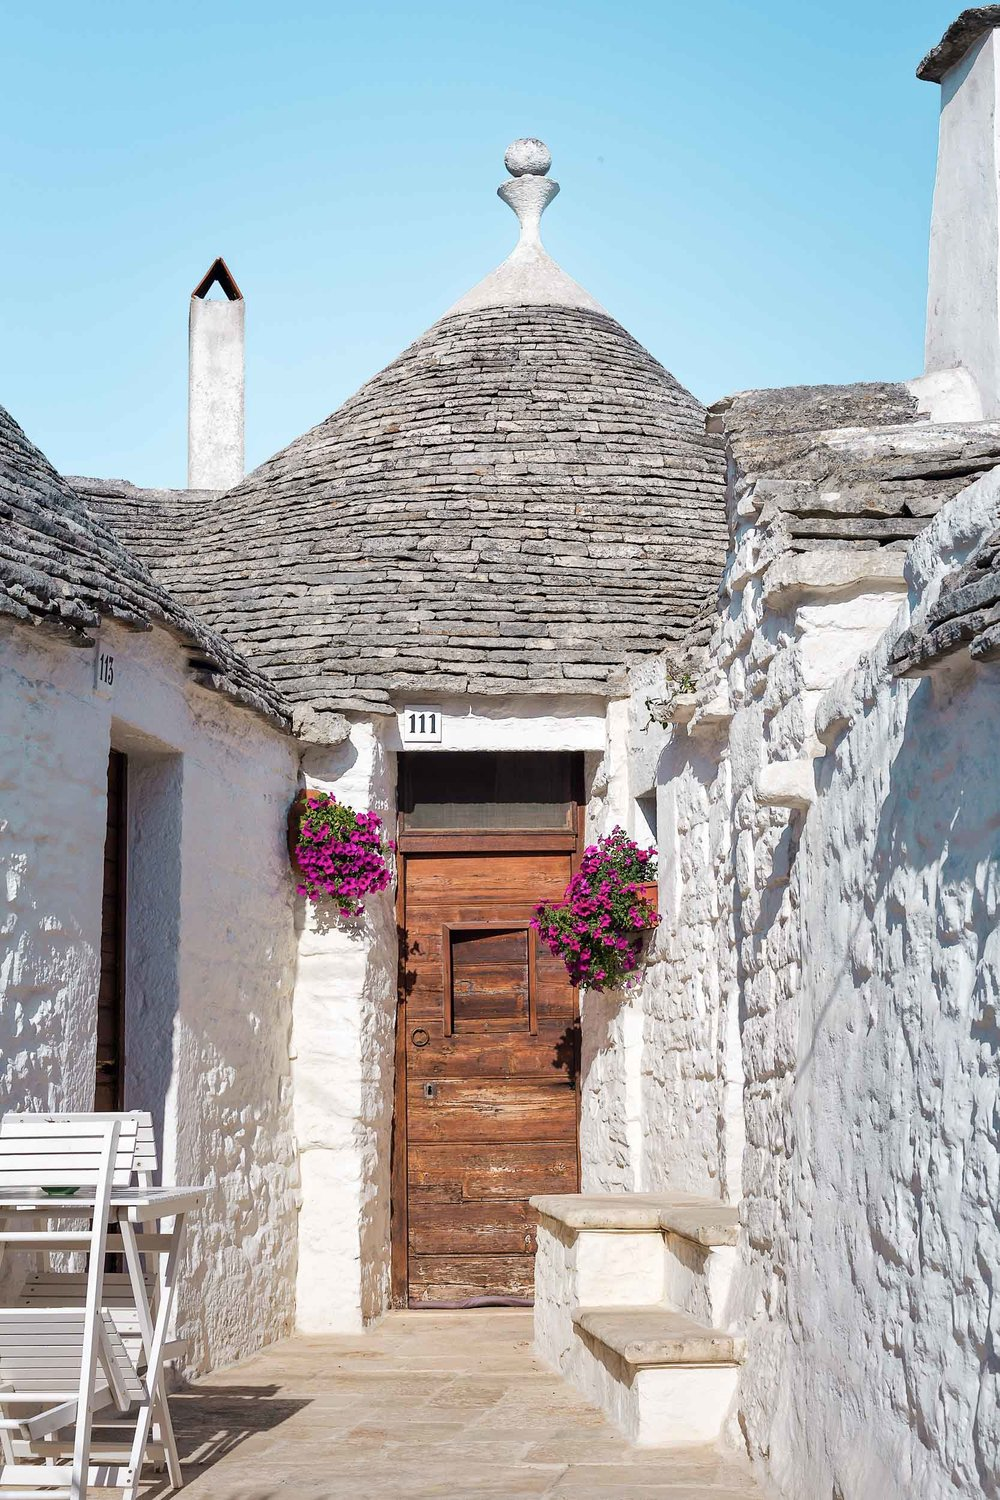 Where to stay in Alberobello, Italy